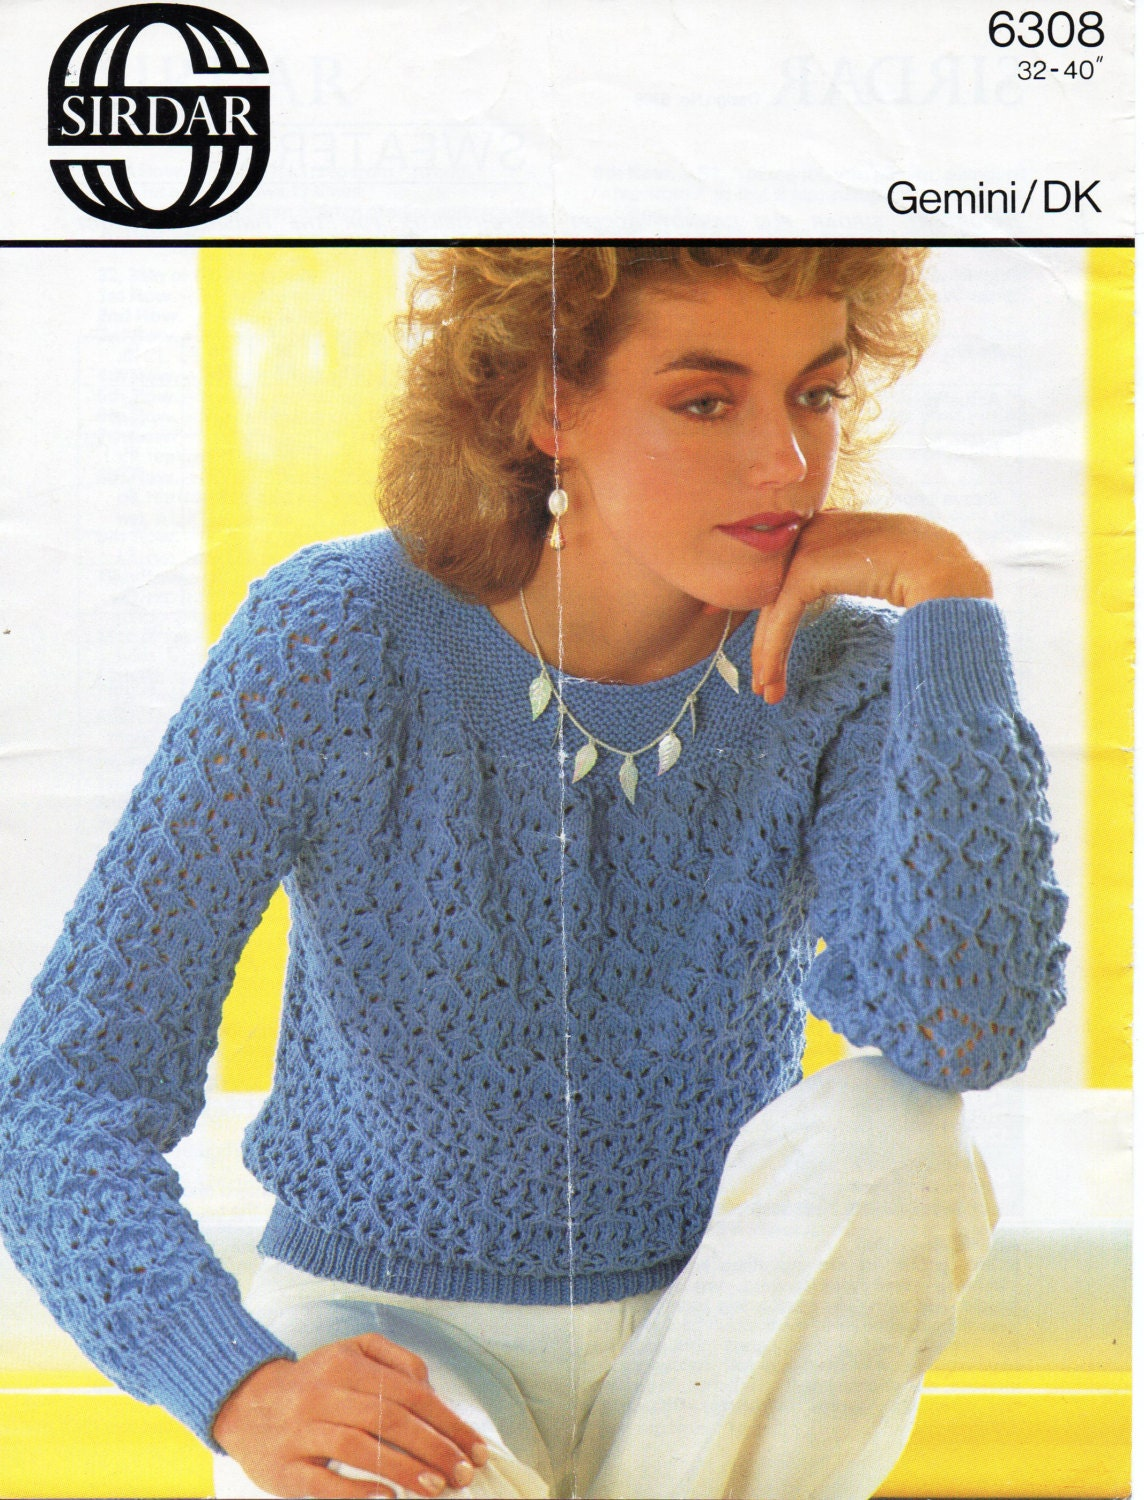 womens lacy sweater knitting pattern 3240 inch DK womens knitting pattern PDF instant download